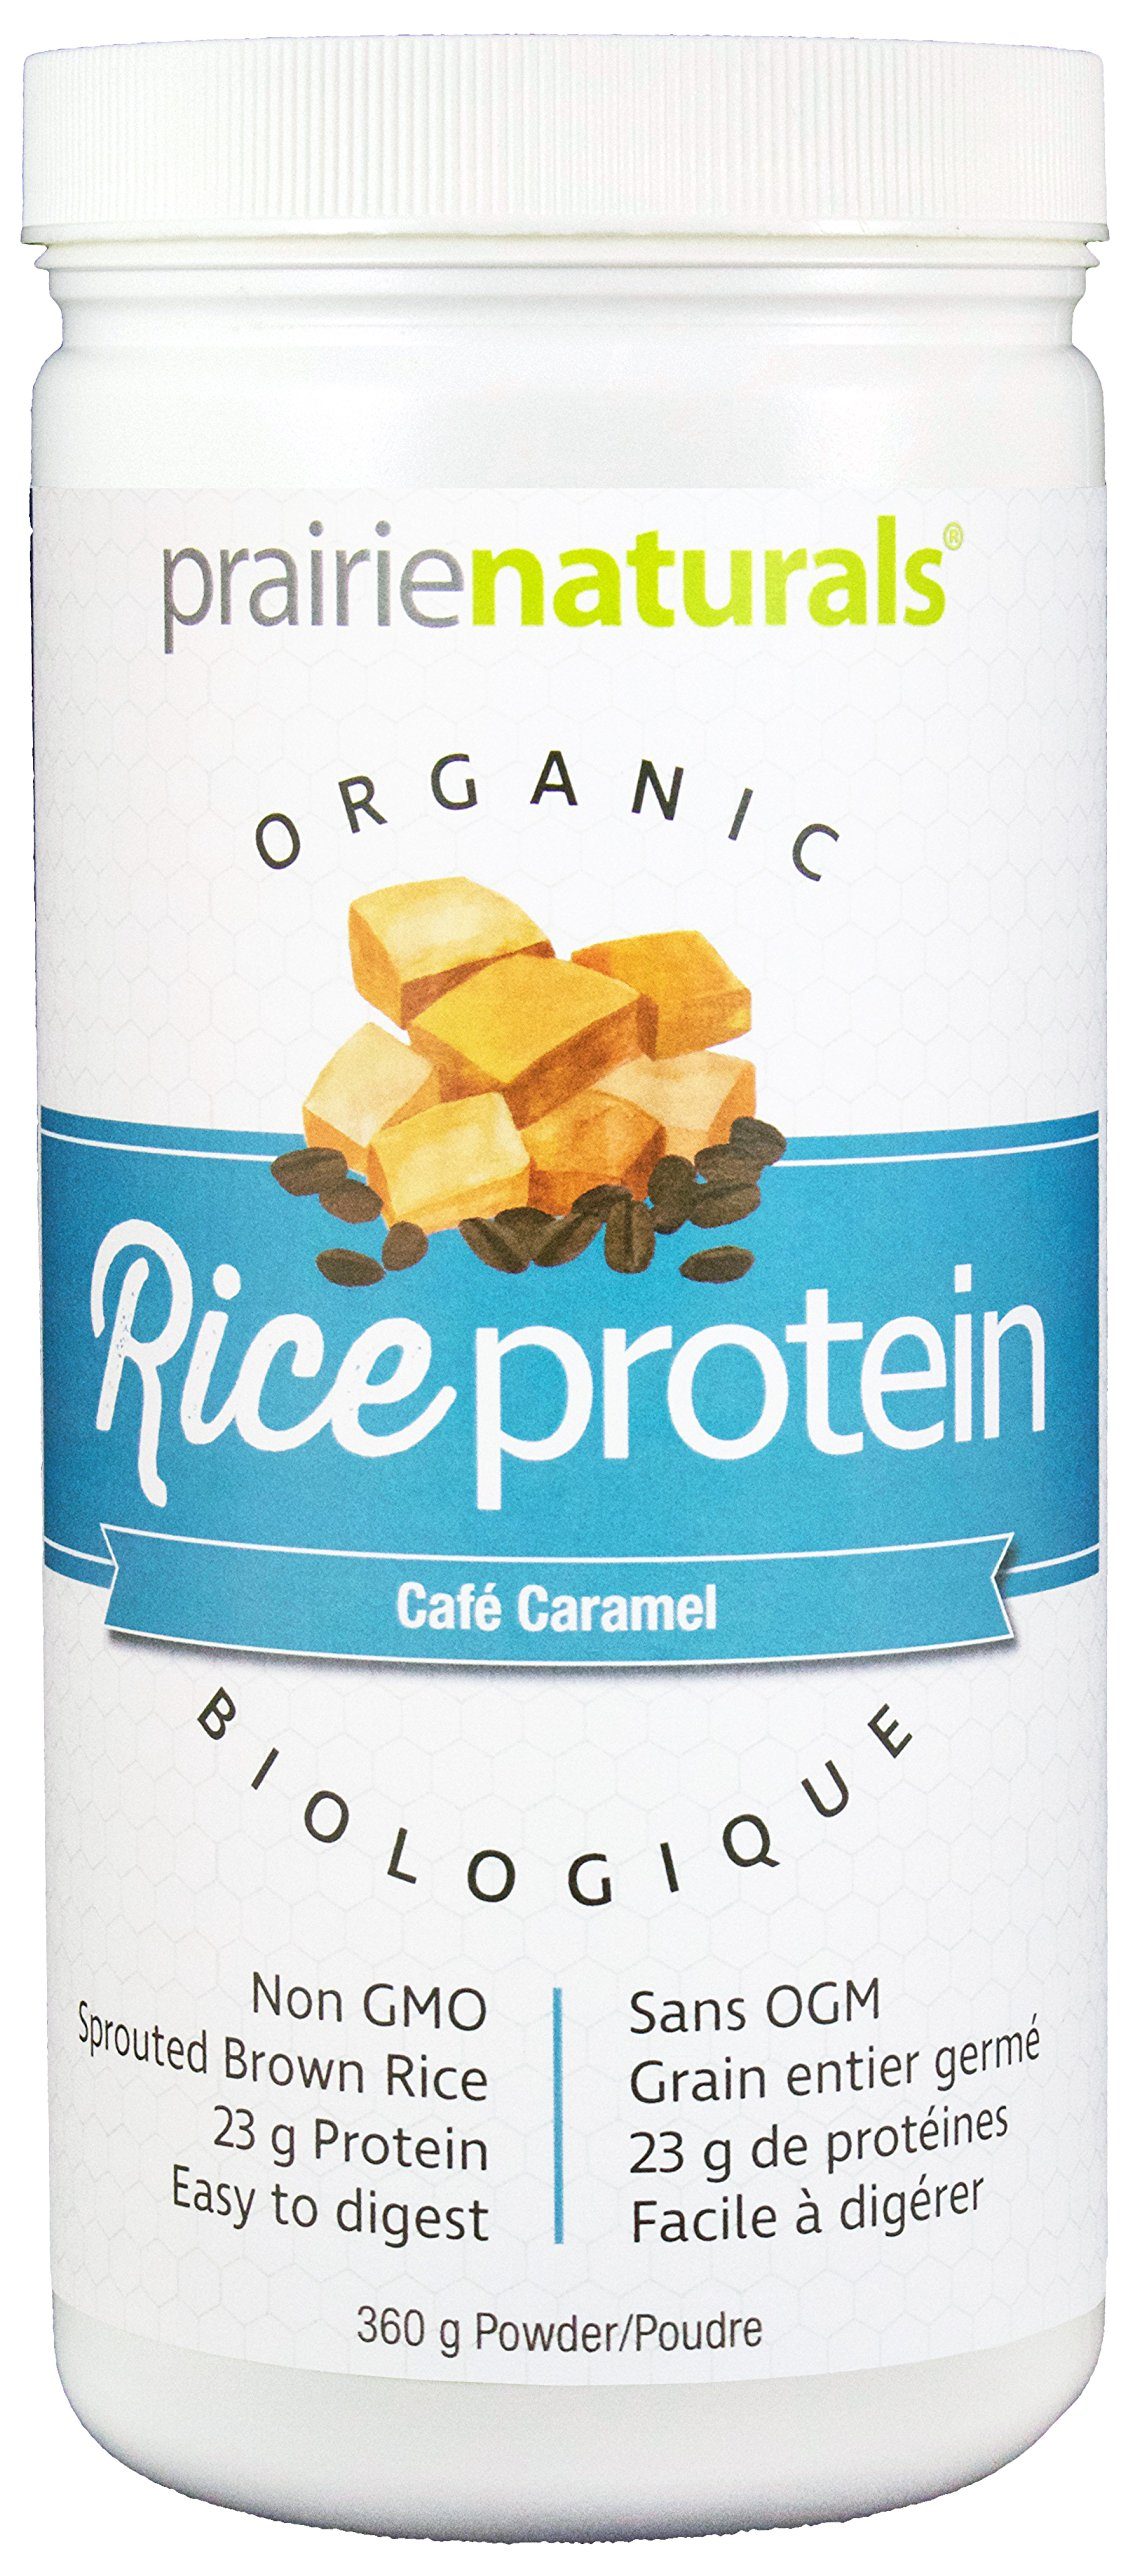 Prairie Naturals Organic Sprouted Brown Rice Protein Cafe Caramel, 12.7 Ounce